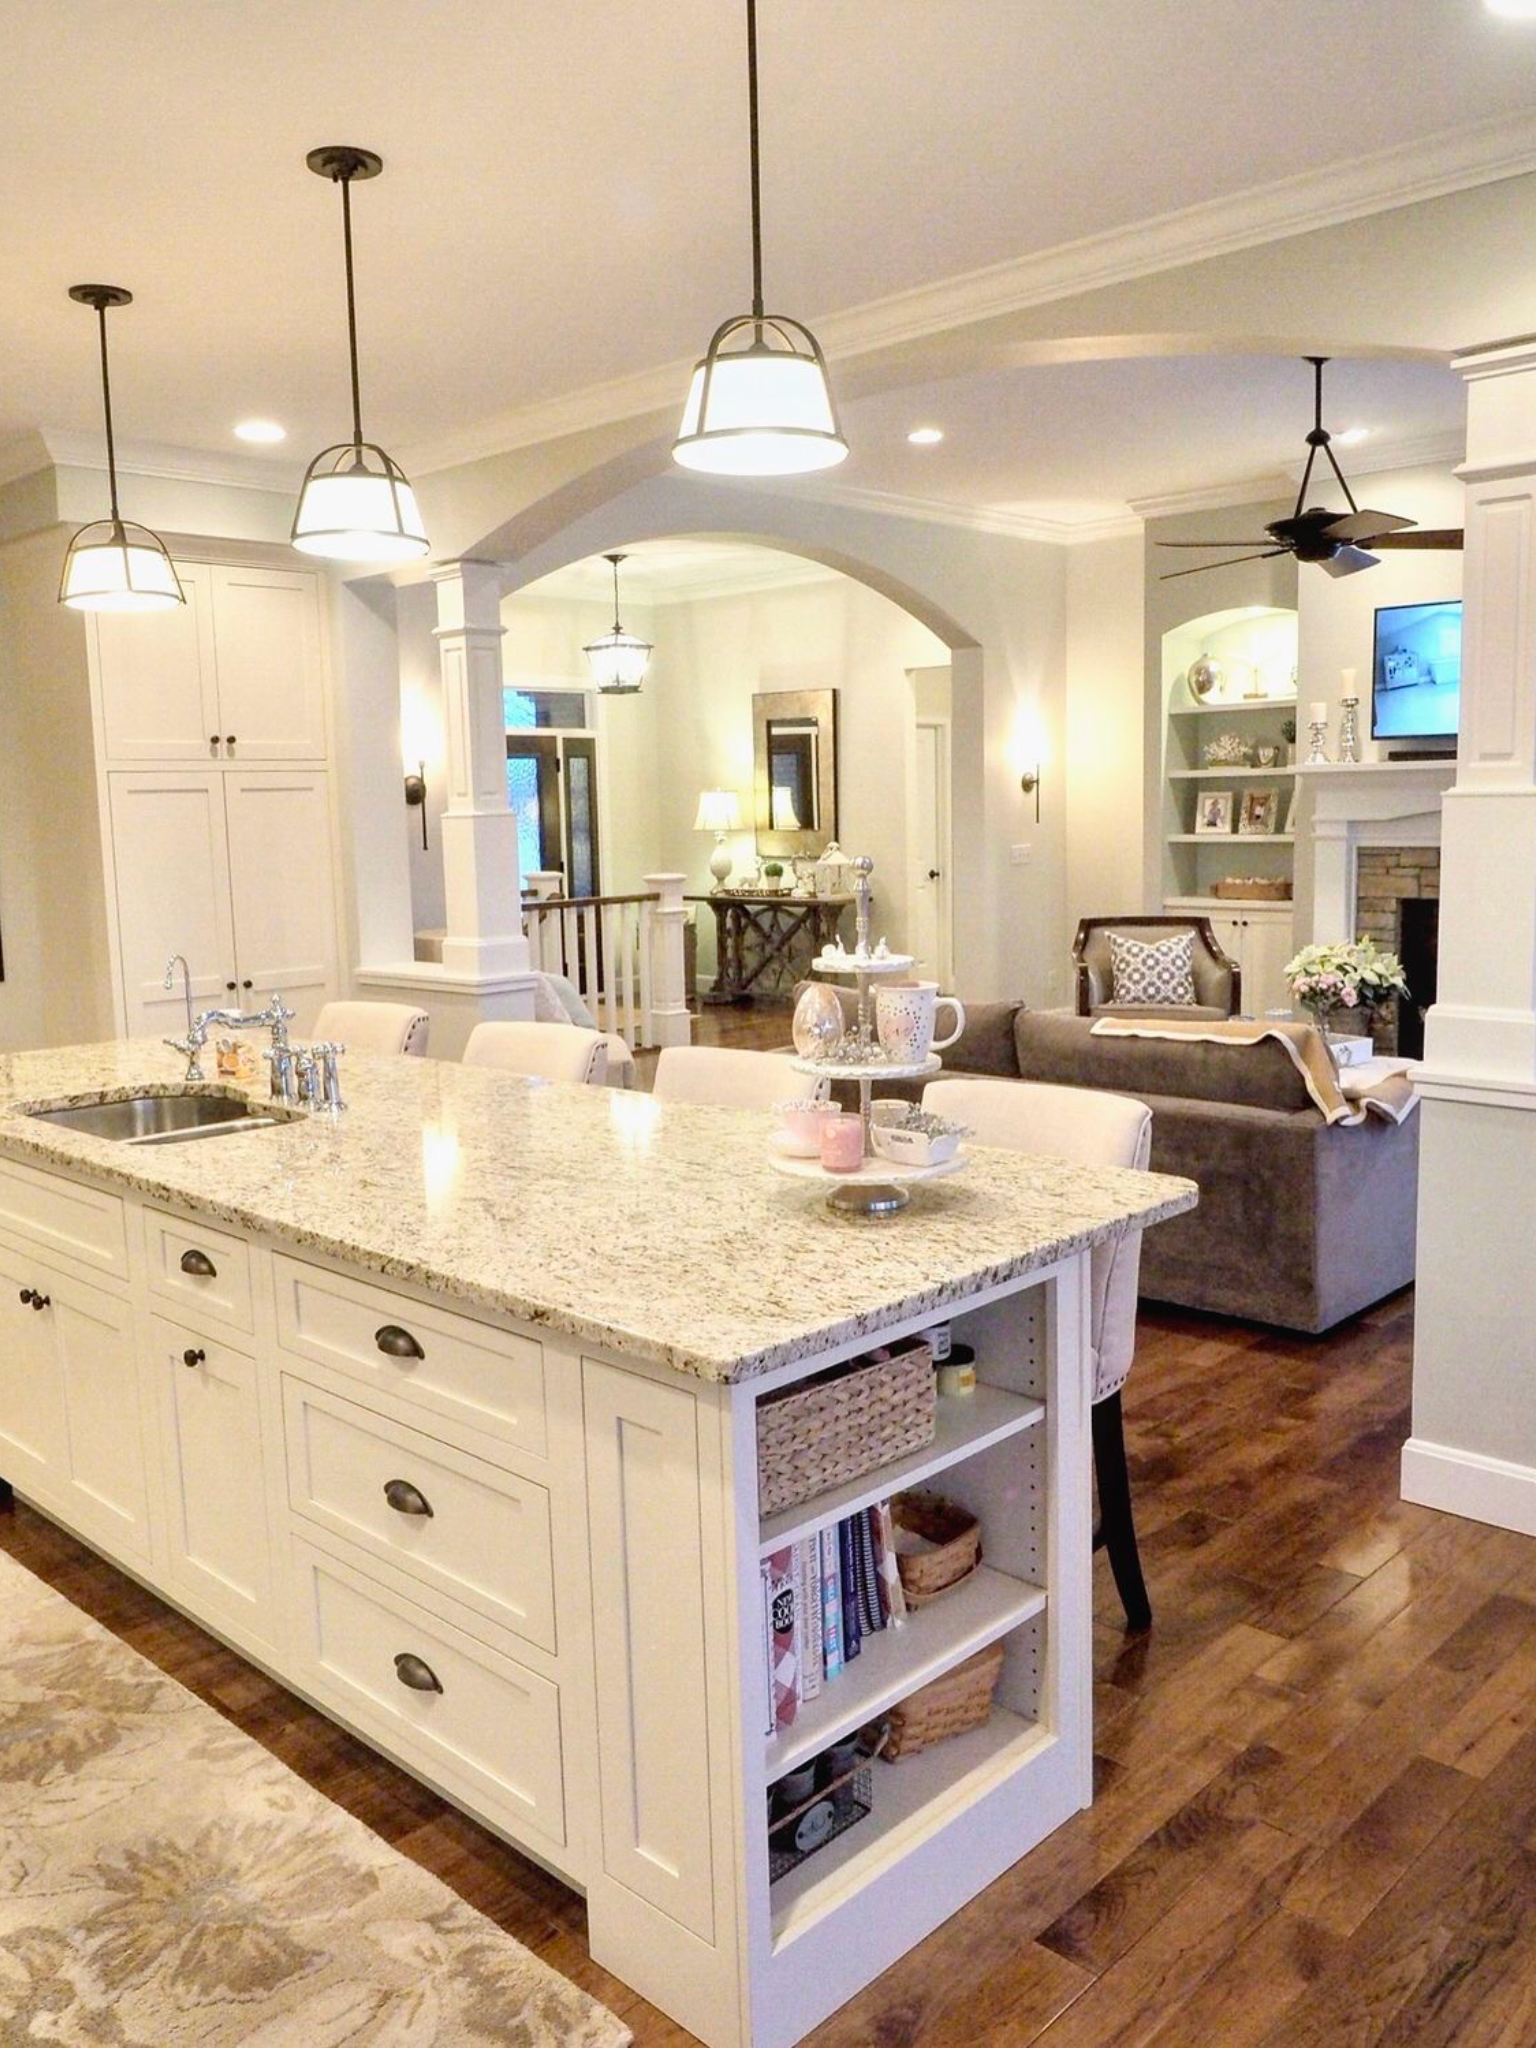 Off White Kitchen Images White Kitchen Offwhite Cabinets Sherwin Williams Conservative